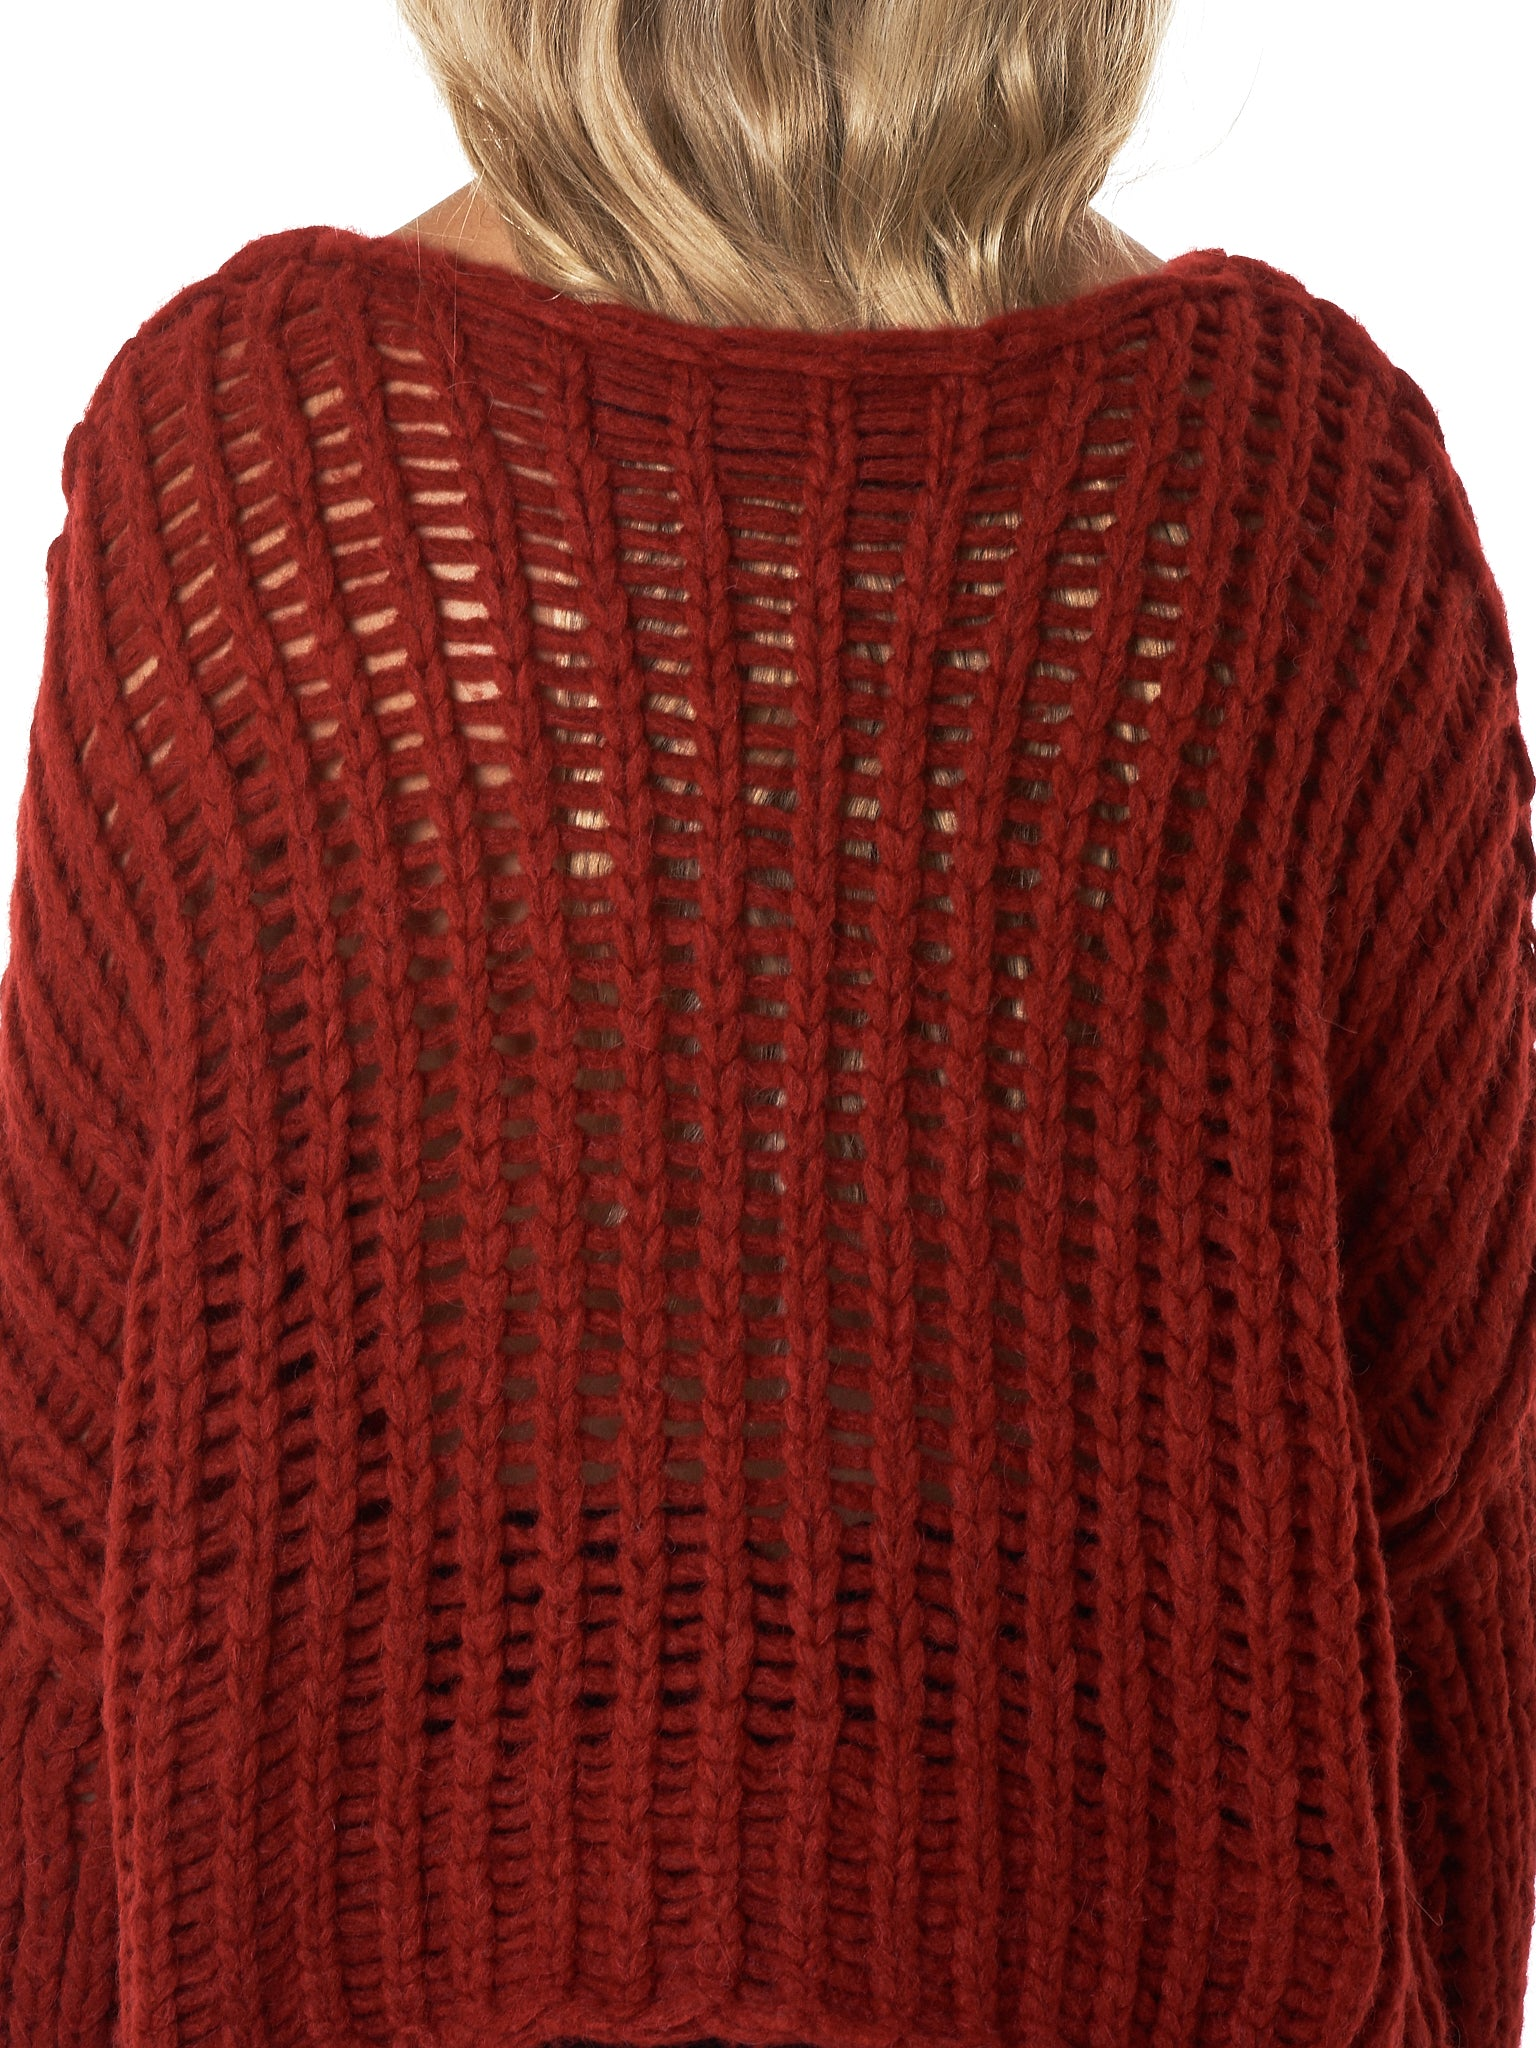 Isabel Benenato Sweater - Hlorenzo Detail 3